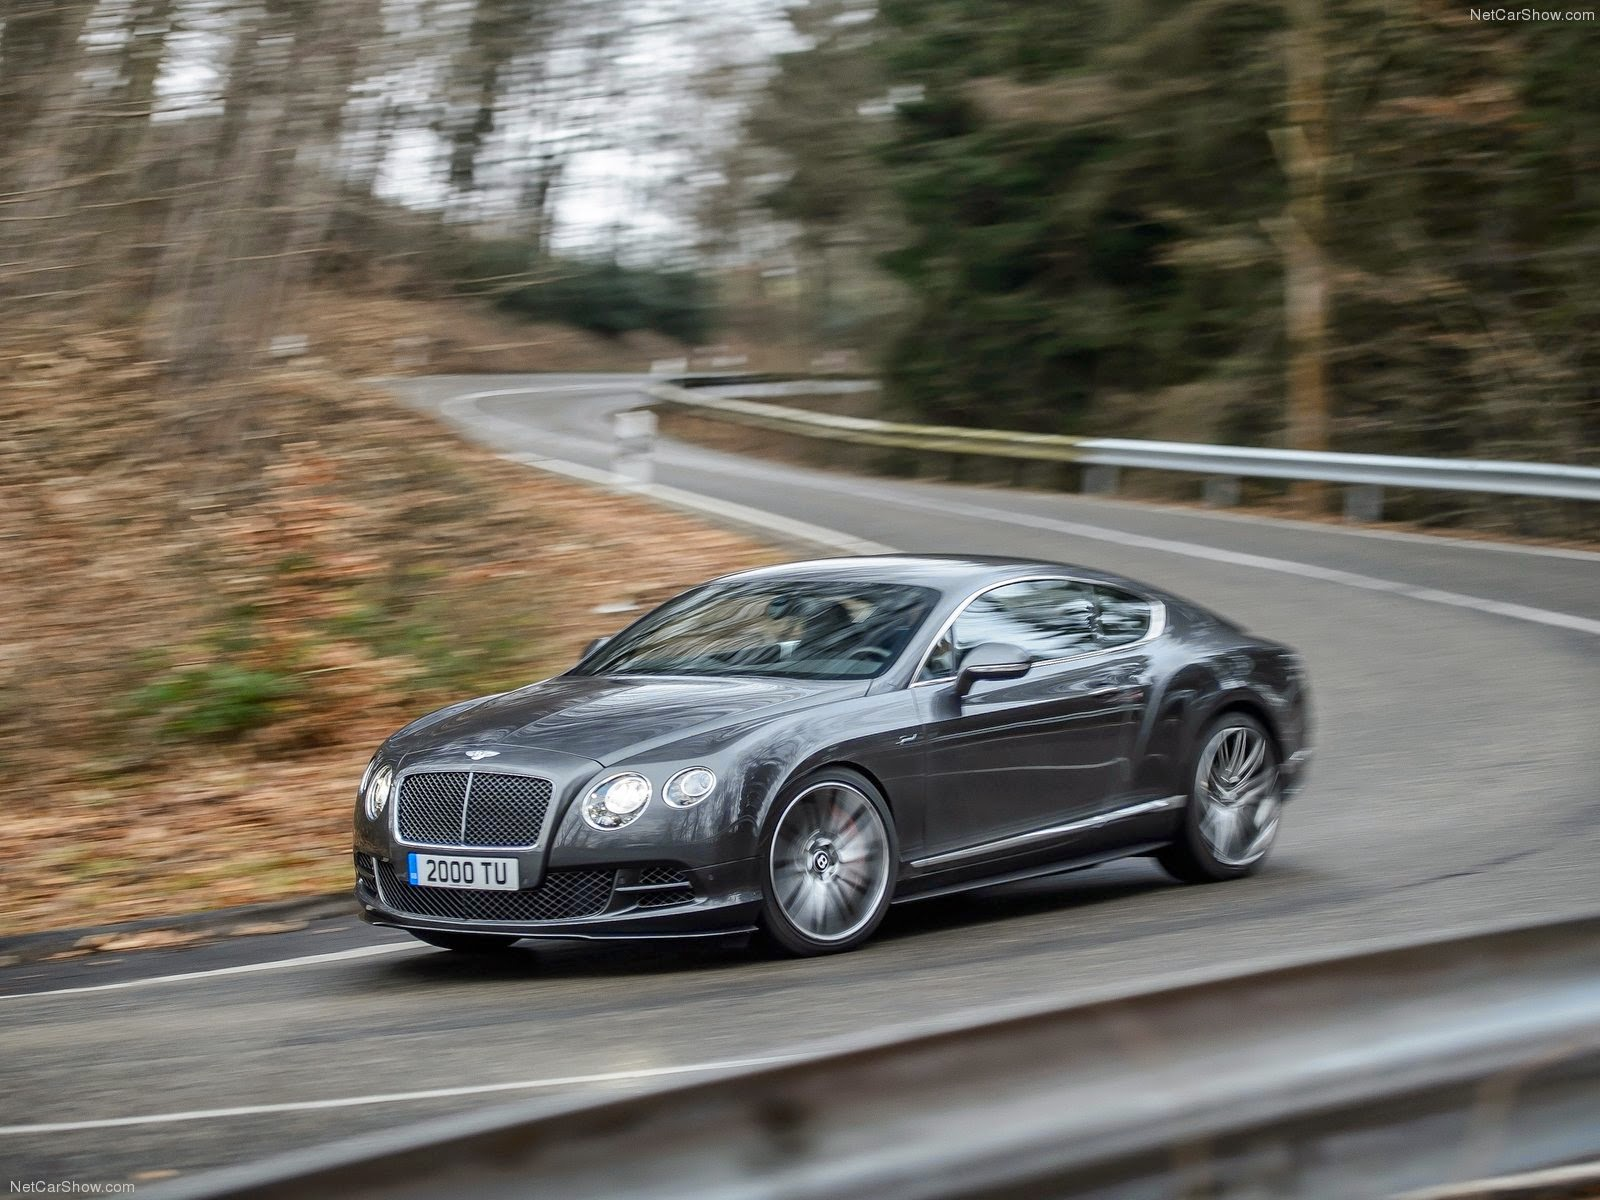 2014 Bentley Continental GT V8 S Image